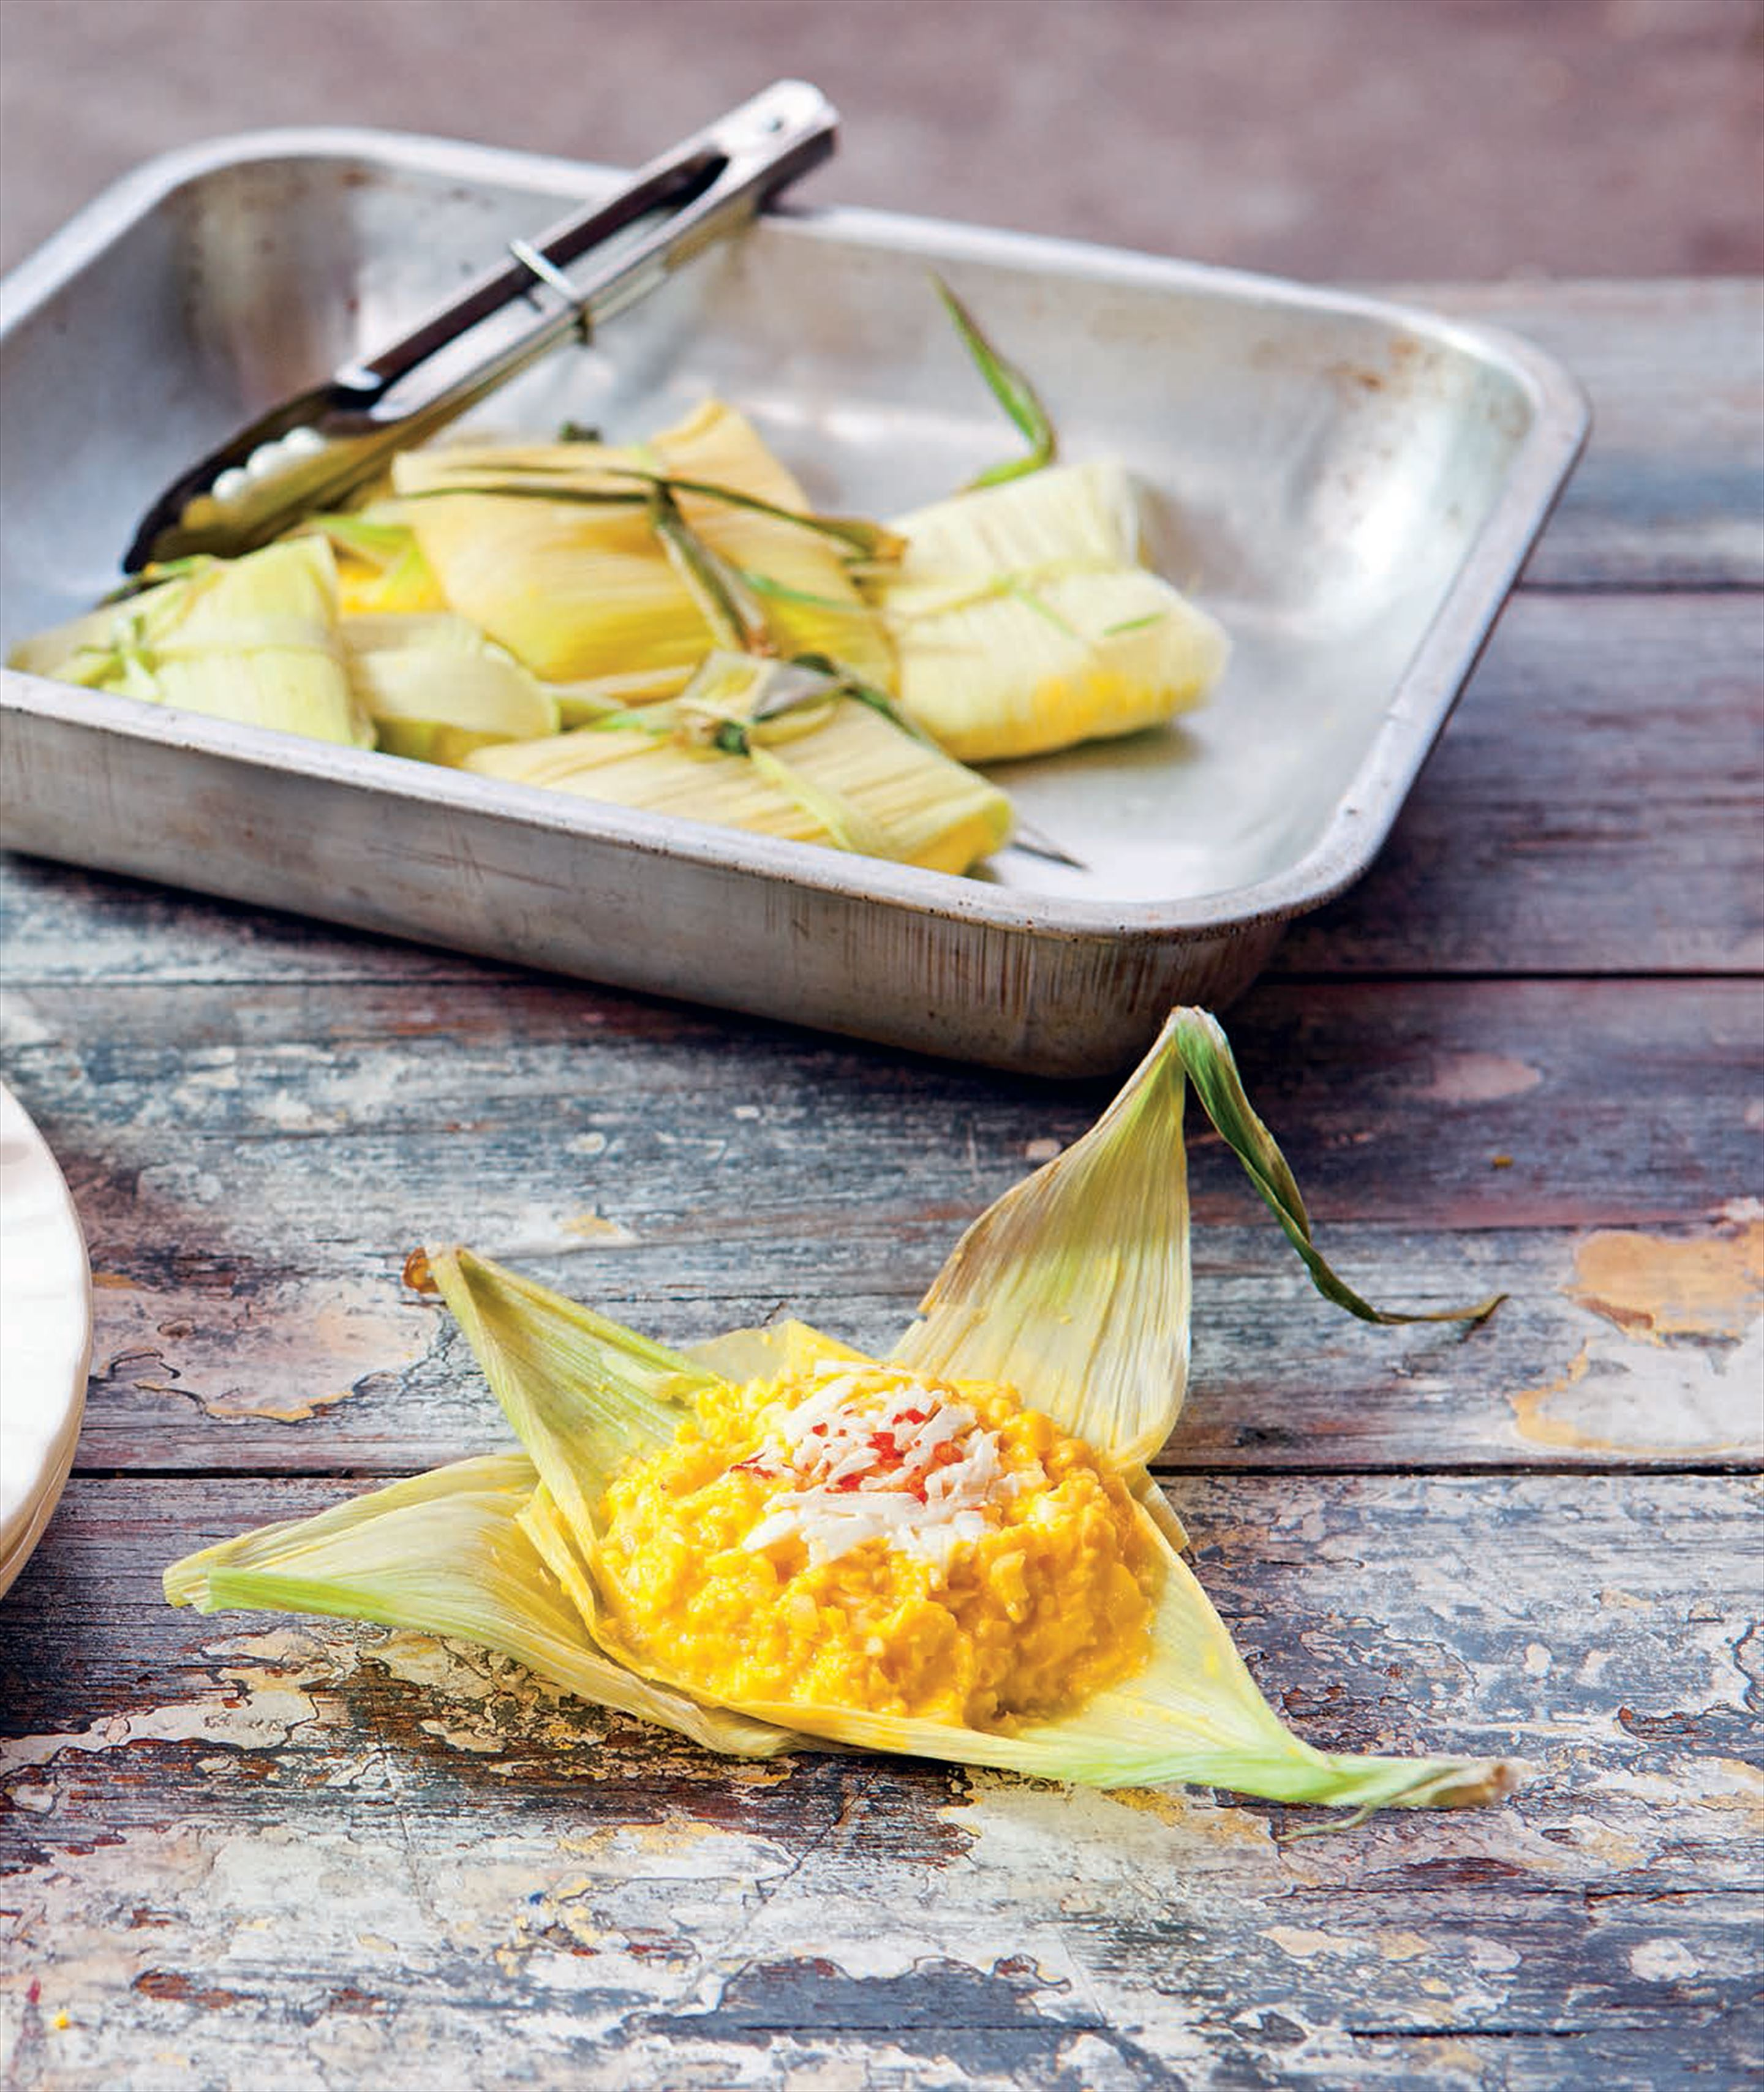 Steamed fresh corn parcels